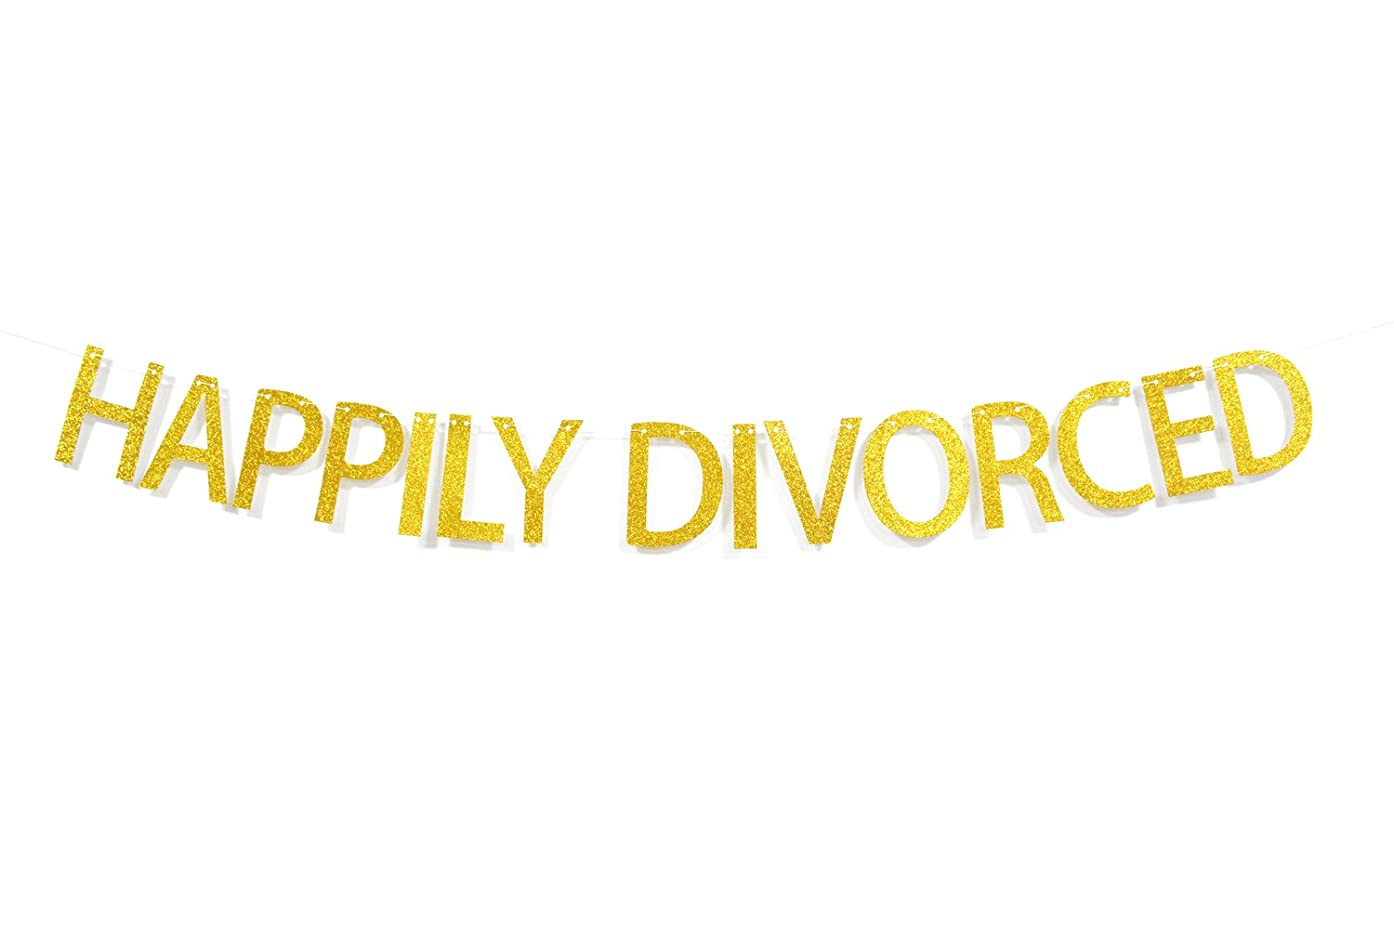 Firefairy? Happily Divorced Gold Glitter Bunting Banner for Divorce Party Photo Booth Props